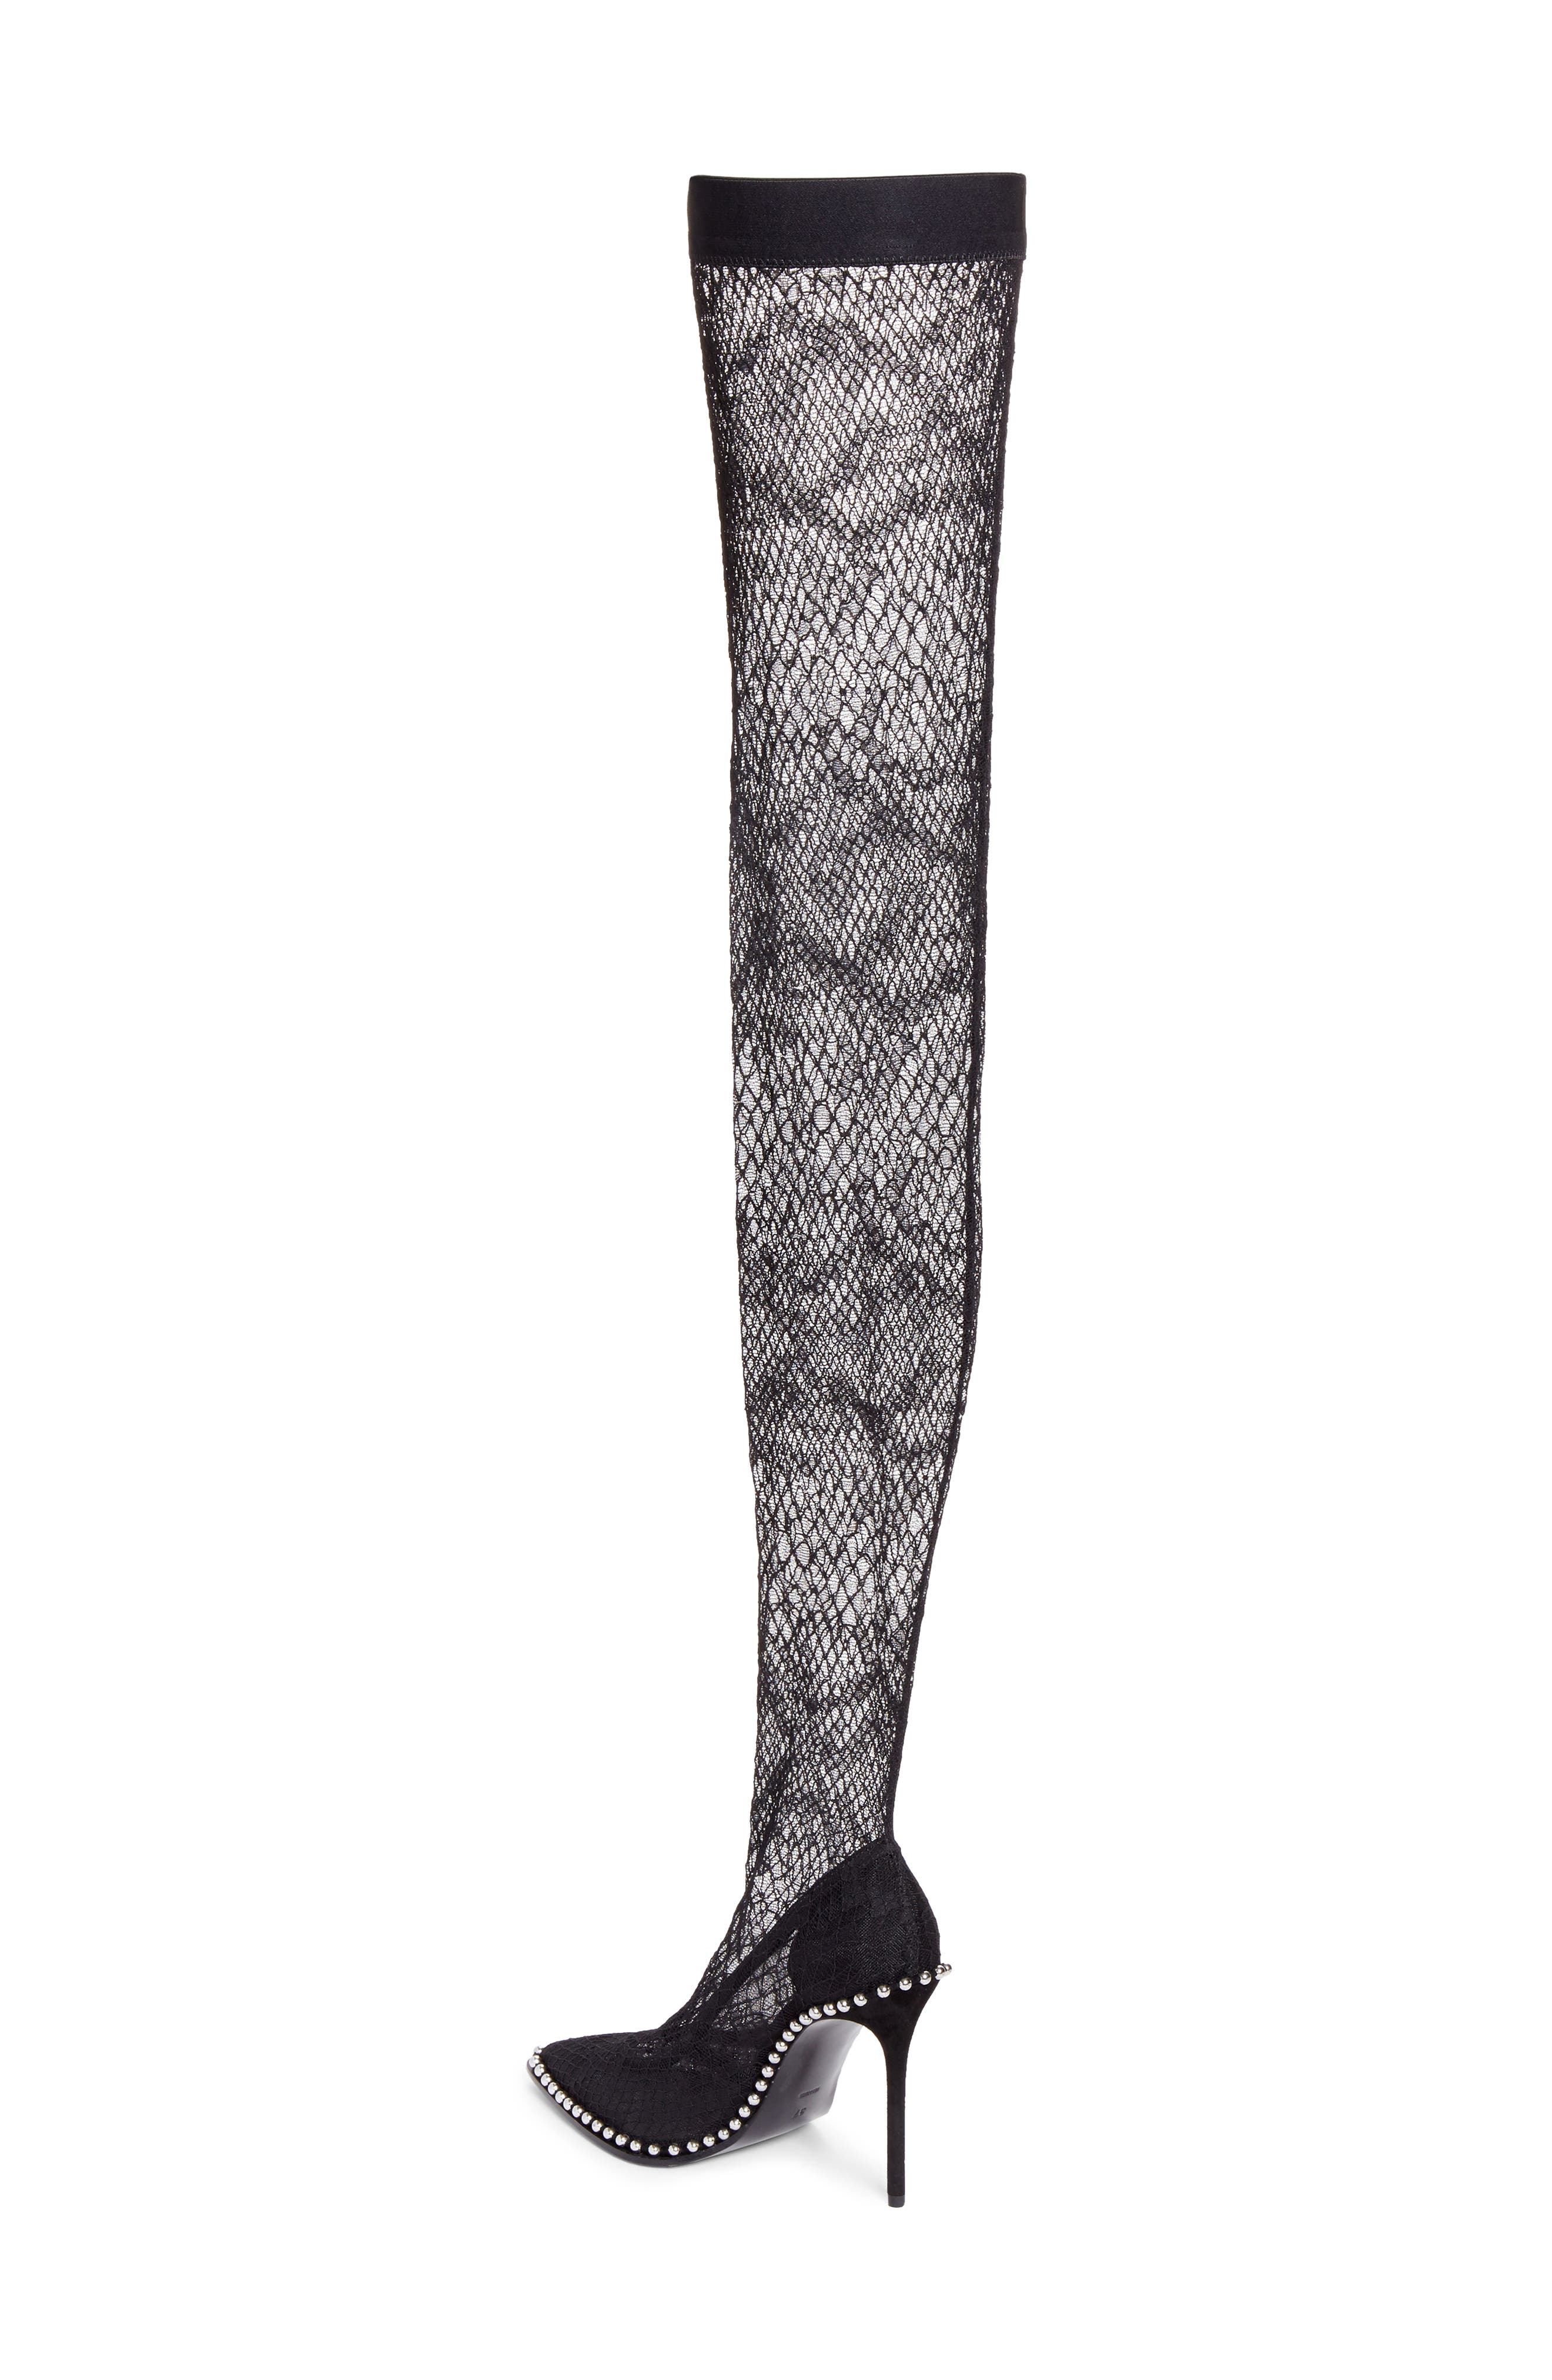 Lyra Thigh-High Fishnet Stocking Pump,                             Alternate thumbnail 2, color,                             Black